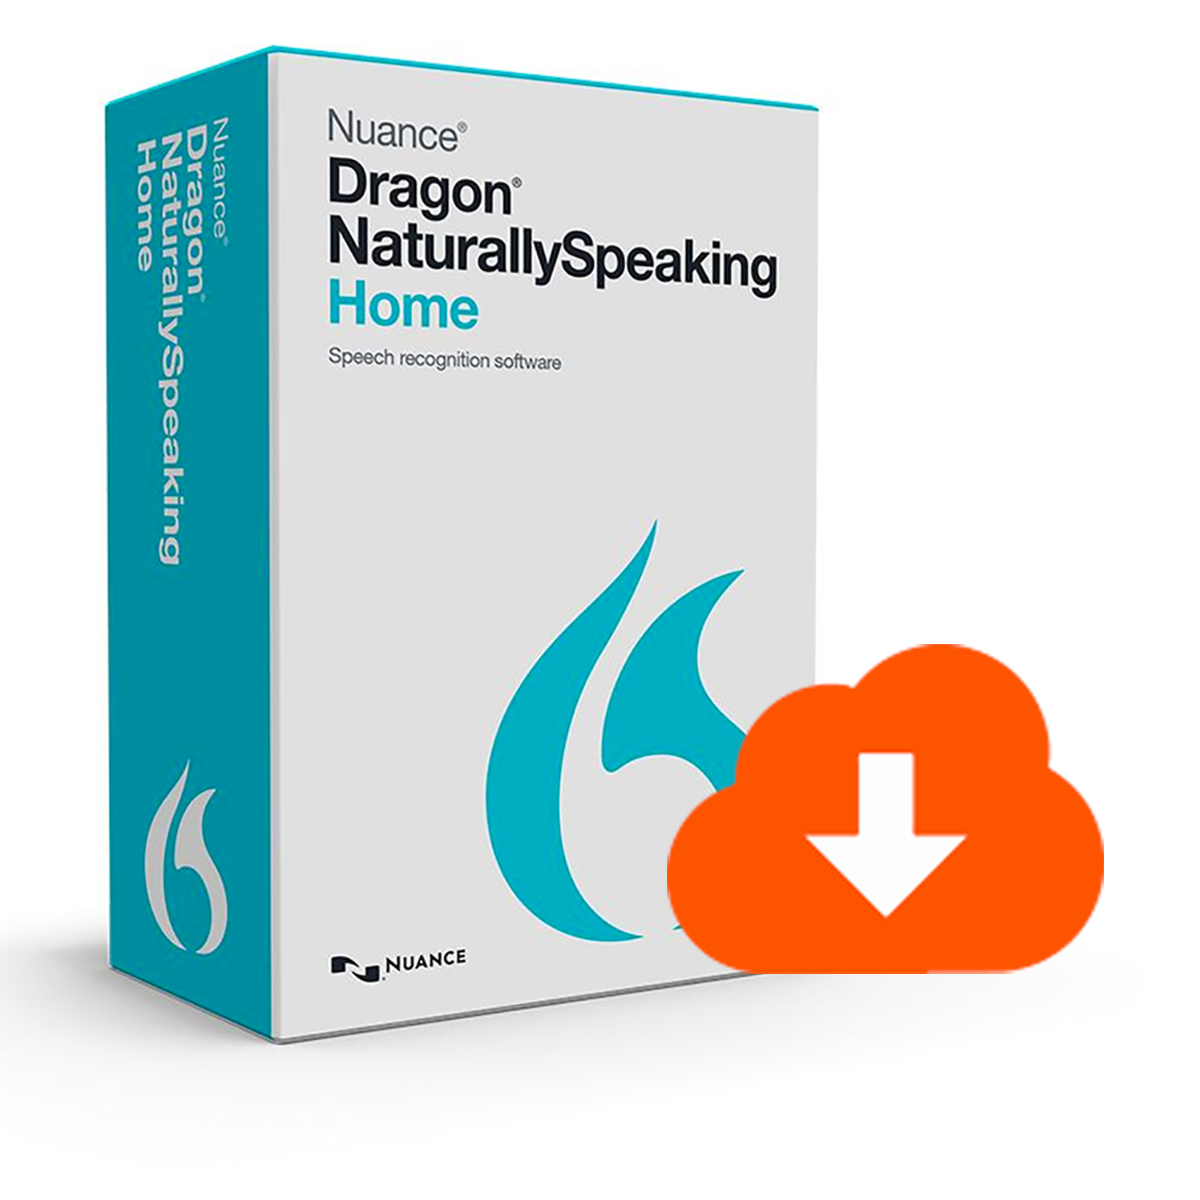 Nuance Dragon NaturallySpeaking Home 13.0 English ESN Download